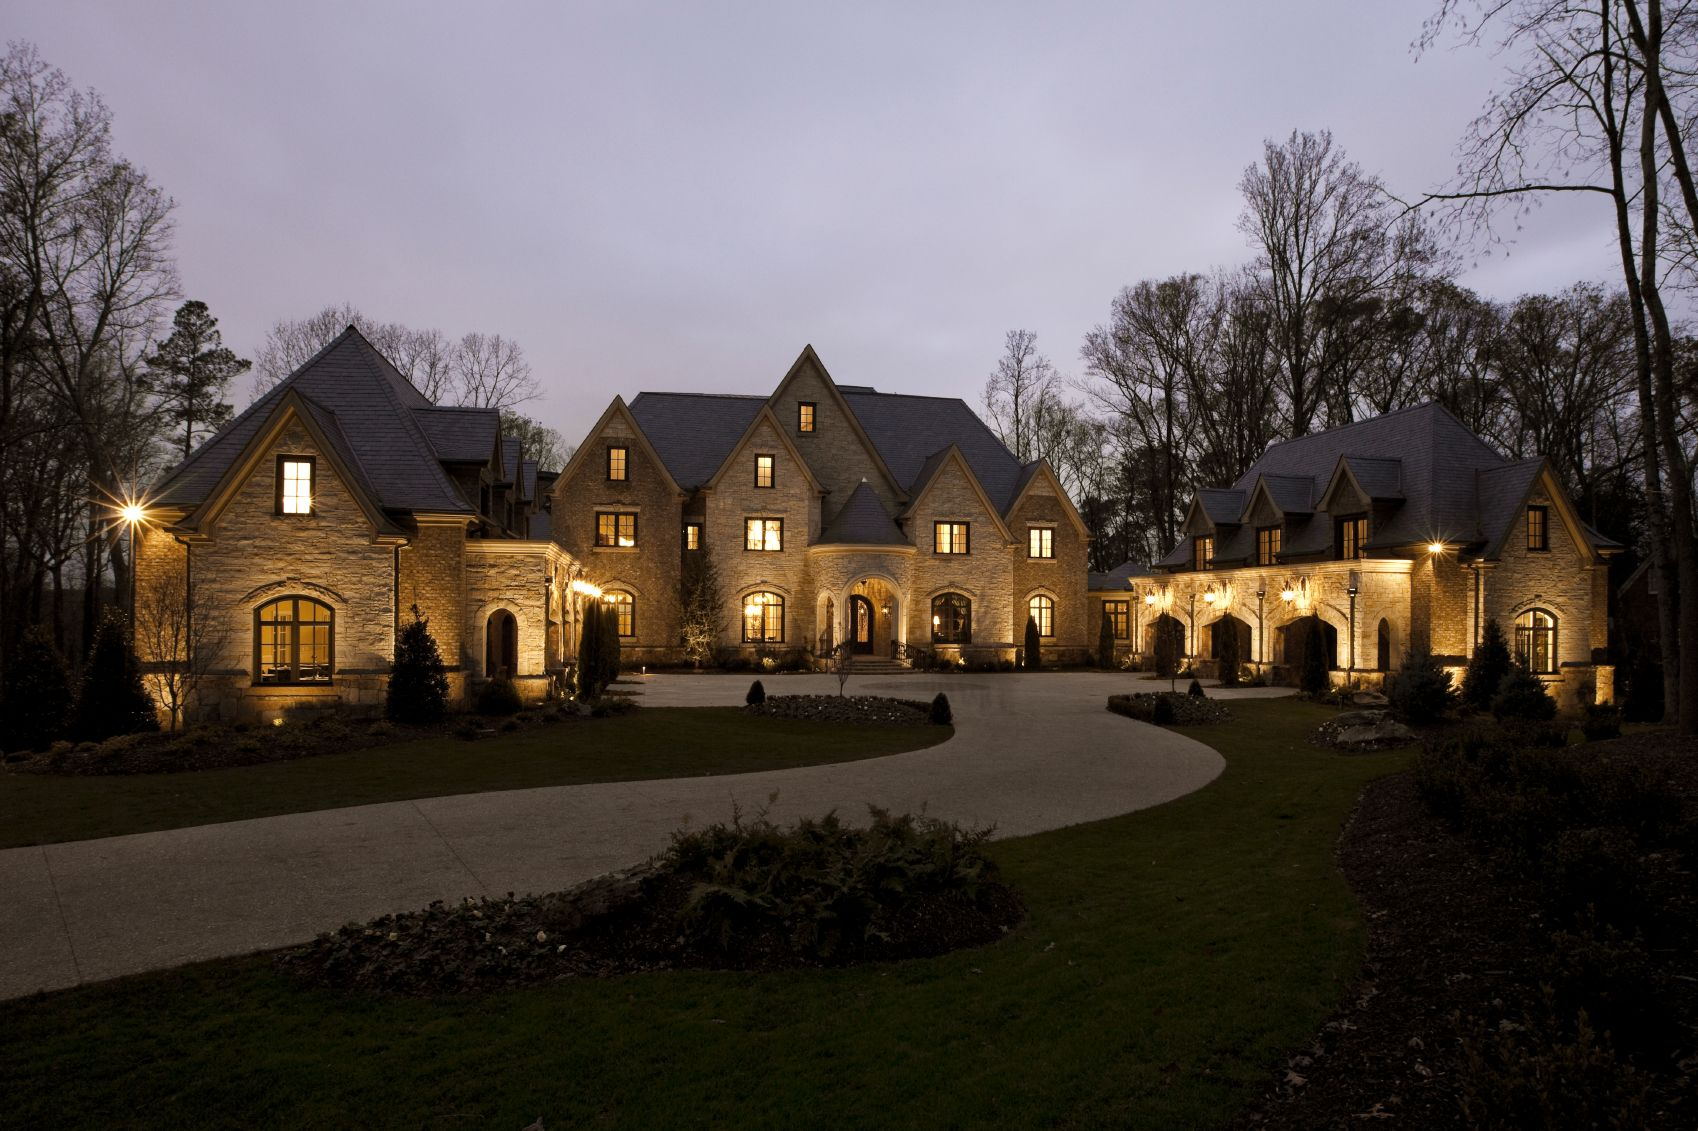 LUXURY DRIVE WAYS | Long Winding Driveway Leading Up To The Main Entrance  Of Elegant Stone .